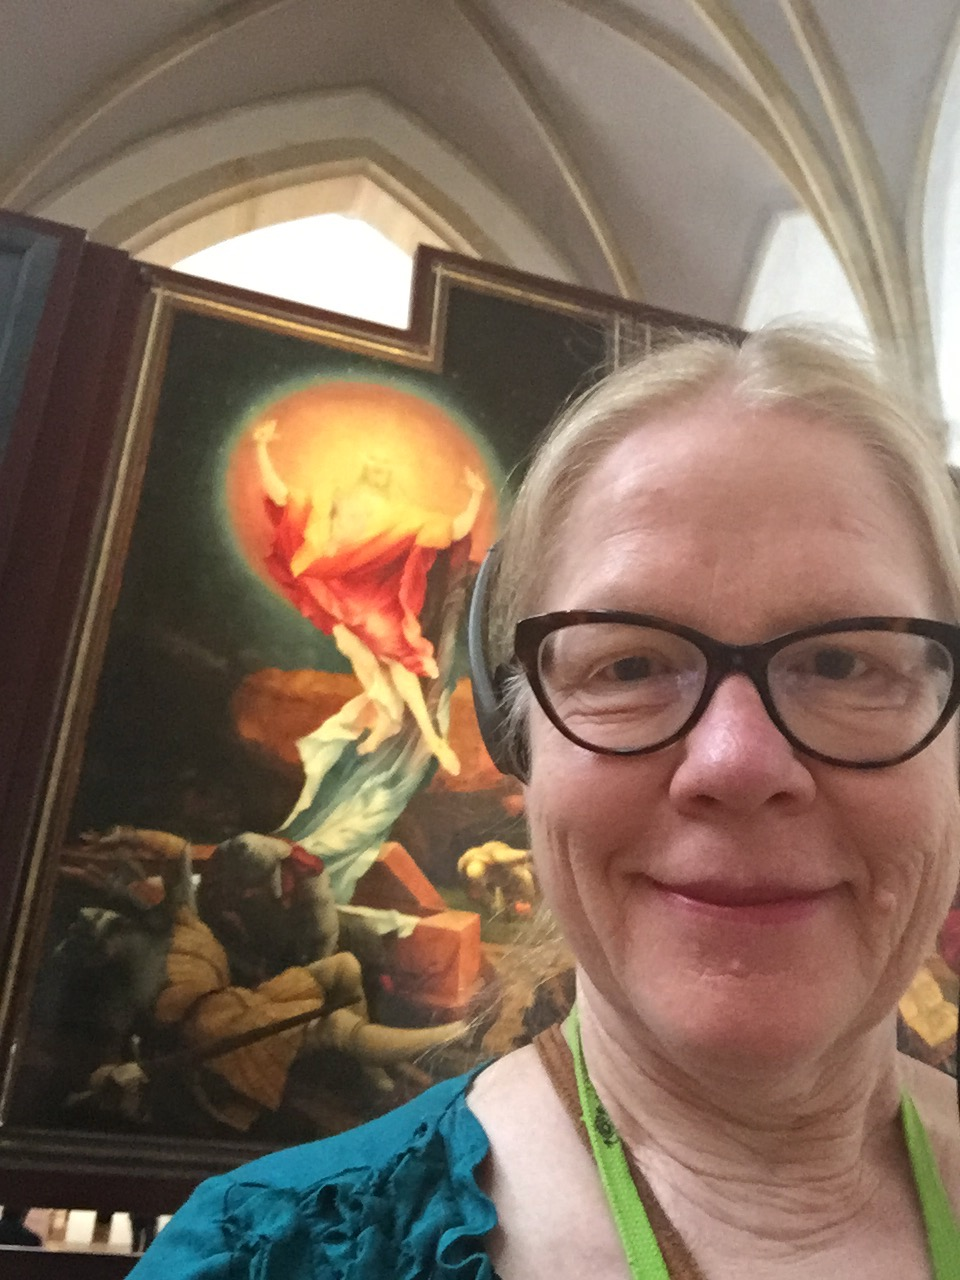 One of my biggest joys in Europe (besides cartwheeling and spending time with wonderful family and friends) was getting to see my favorite artwork of all time, the Isenheim Altarpiece by Matthias Grunewald in Colmar, France. I was traveling solo so got to spend as much time as I wanted to gawk and fawn and feel God's presence at this magnificent triptych. What a gift! May you be so lucky to have one of your nerd passions nourished in 2018. Whether in Timbucktu or your own backyard! :)